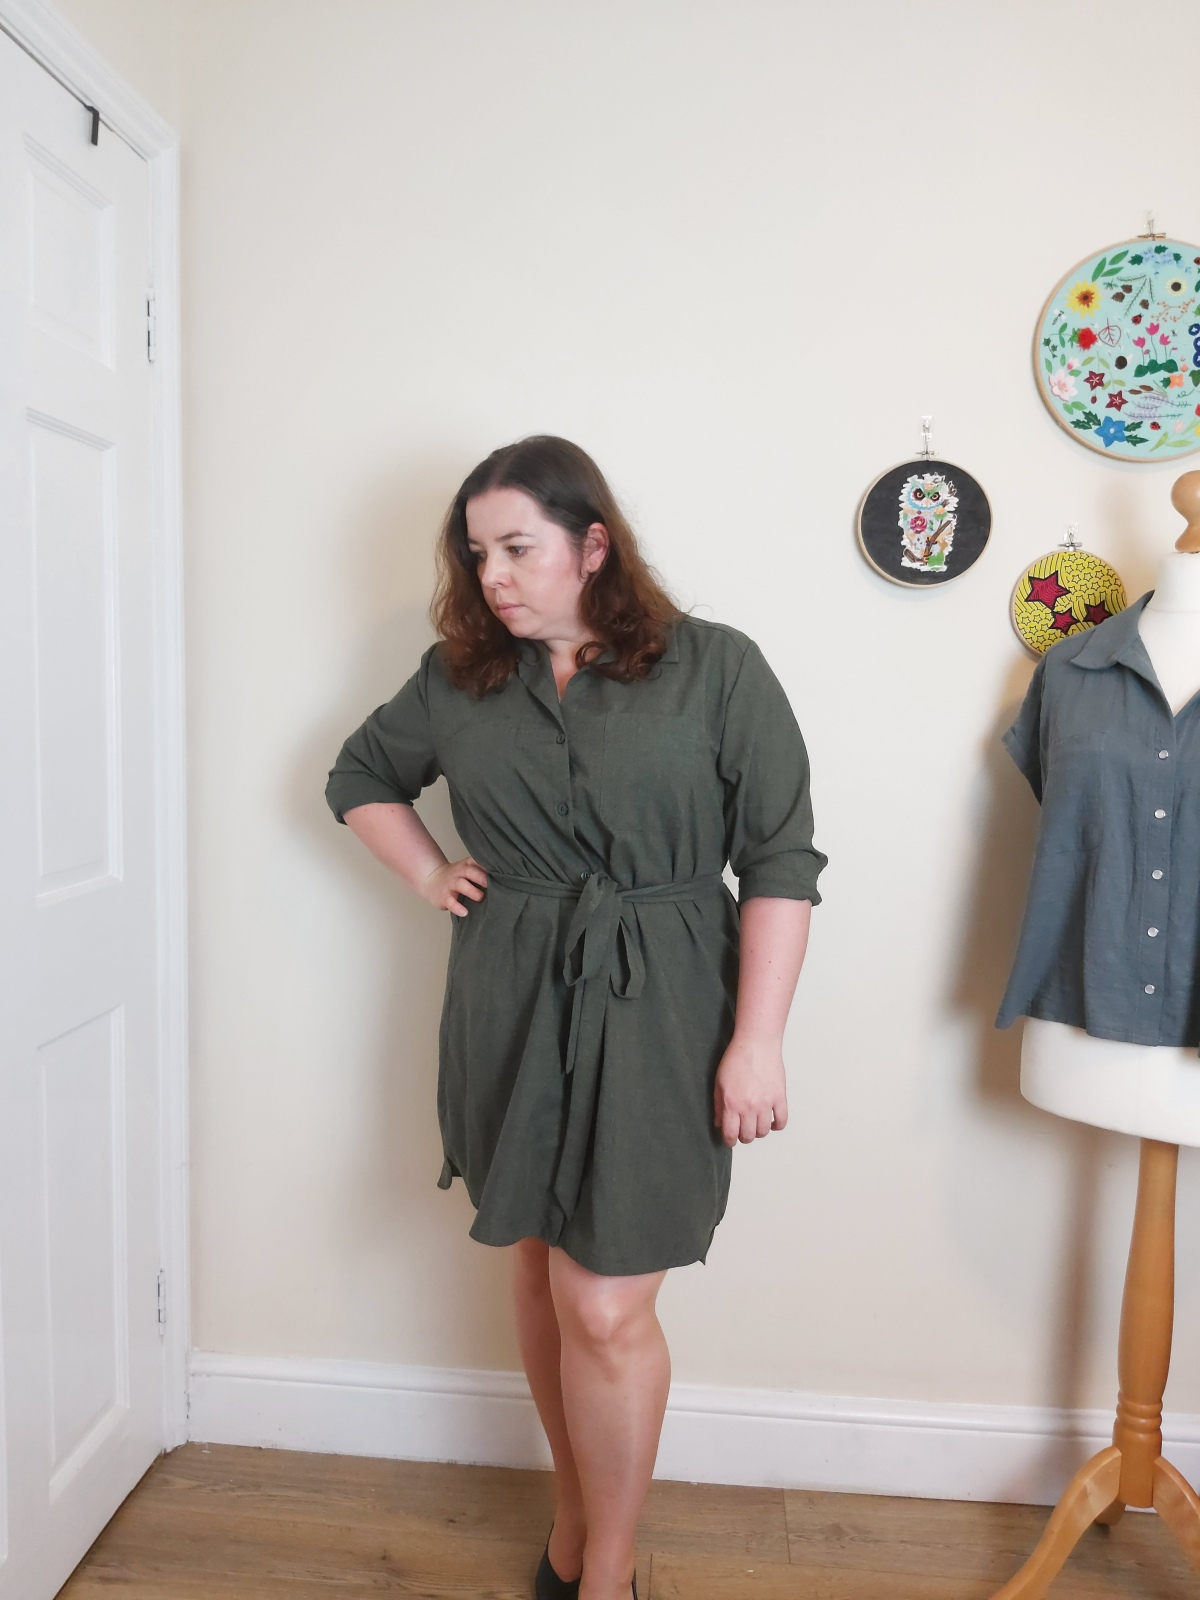 Alex shirtdress – 3 ways to wear